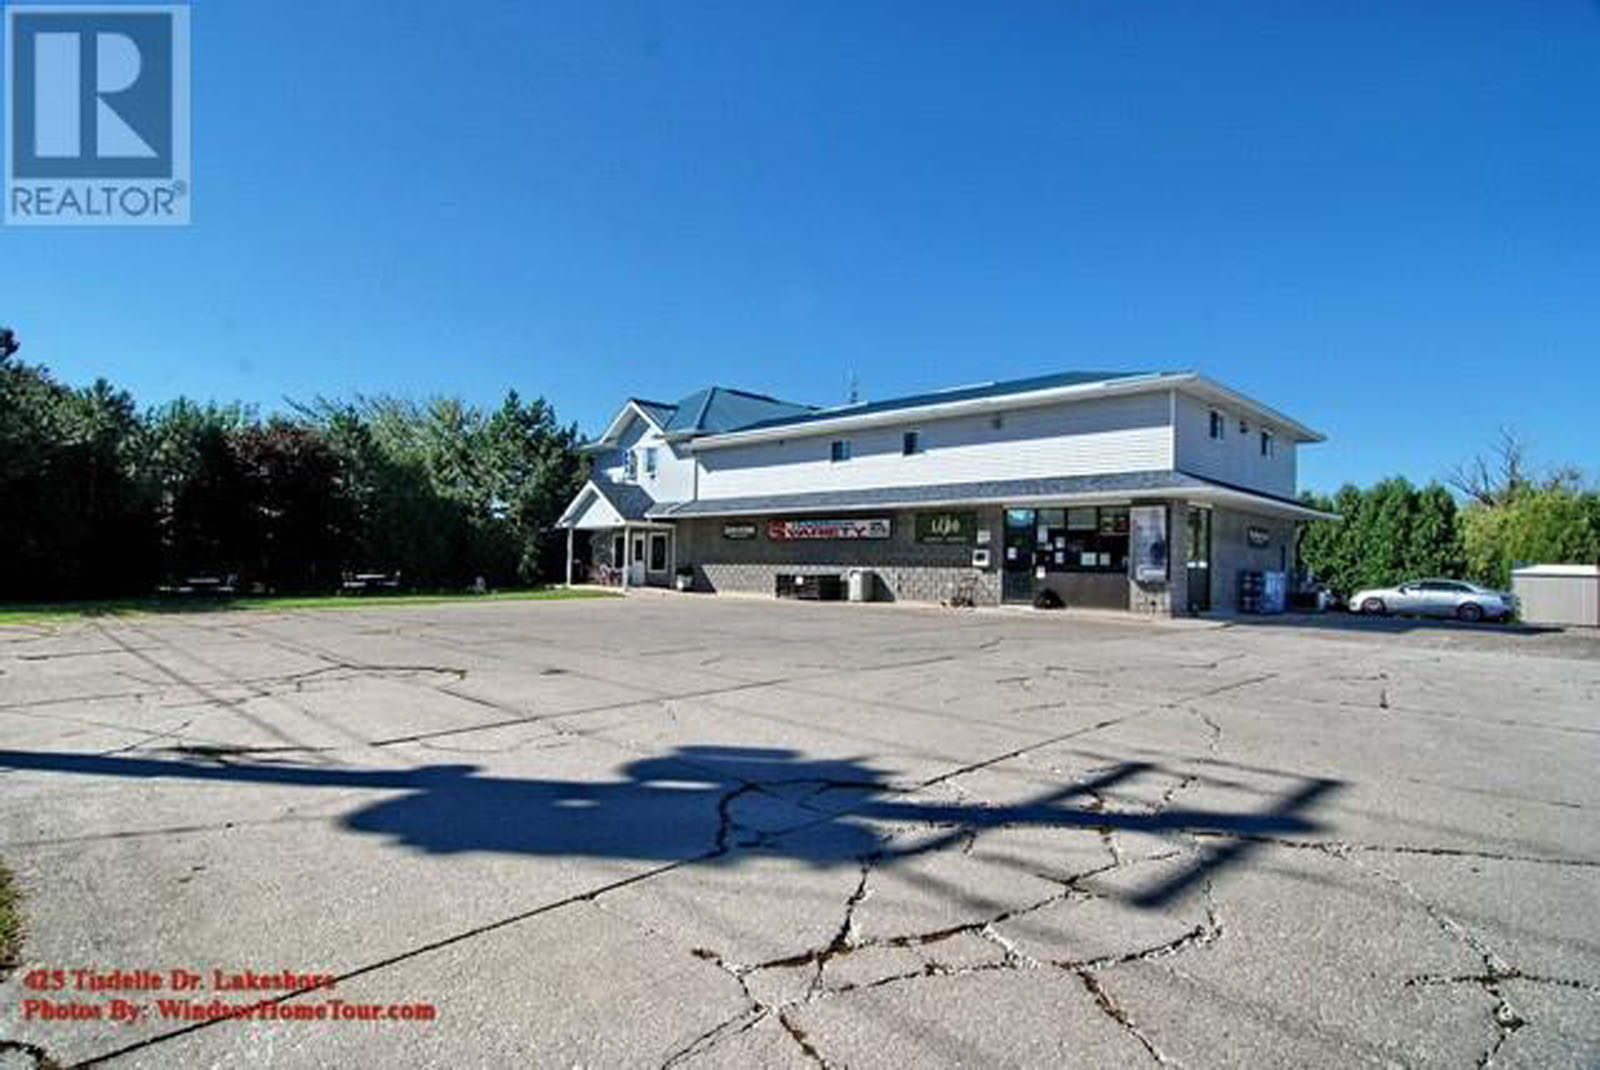 425 Tisdelle Lakeshore, Business Property For Sale